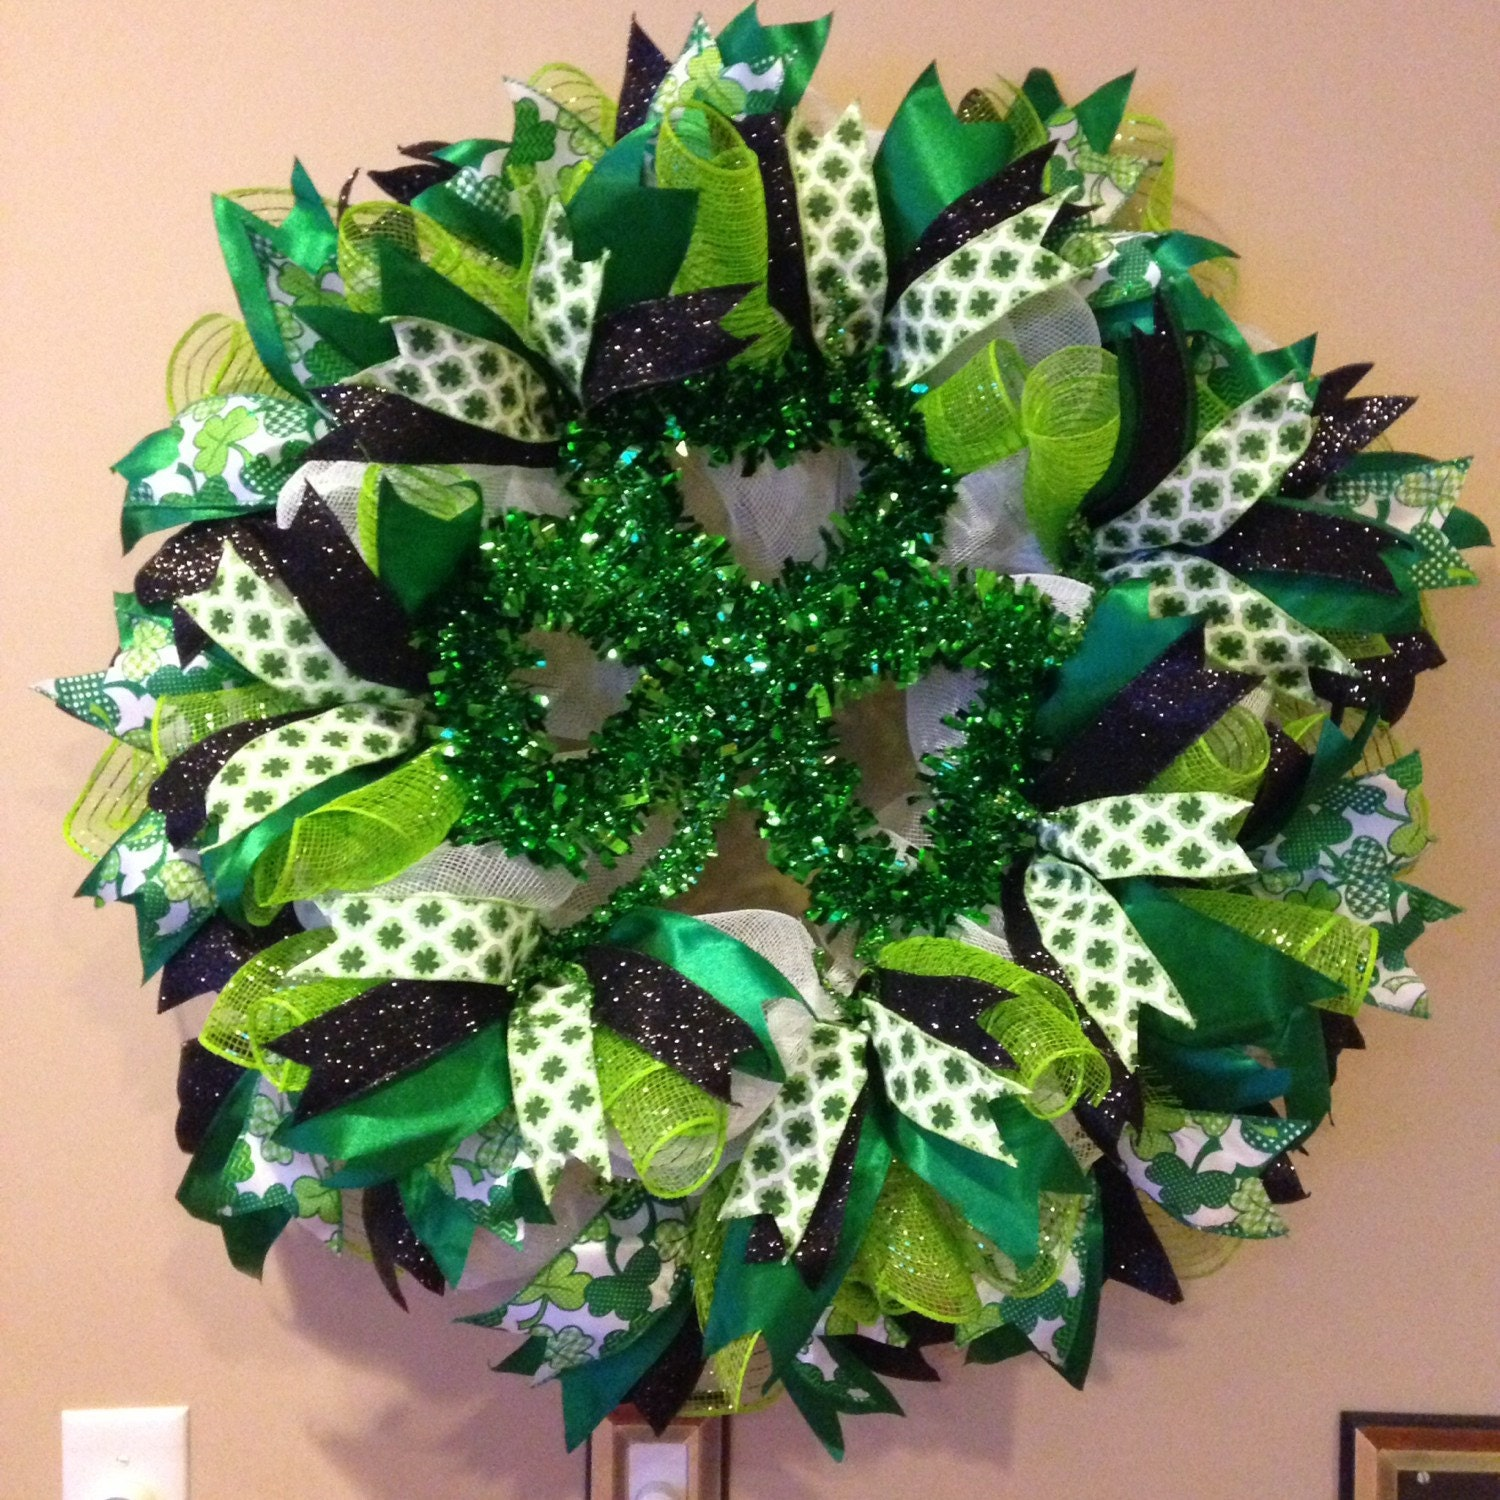 st patrick 39 s day deco mesh wreath st patrick 39 s day. Black Bedroom Furniture Sets. Home Design Ideas